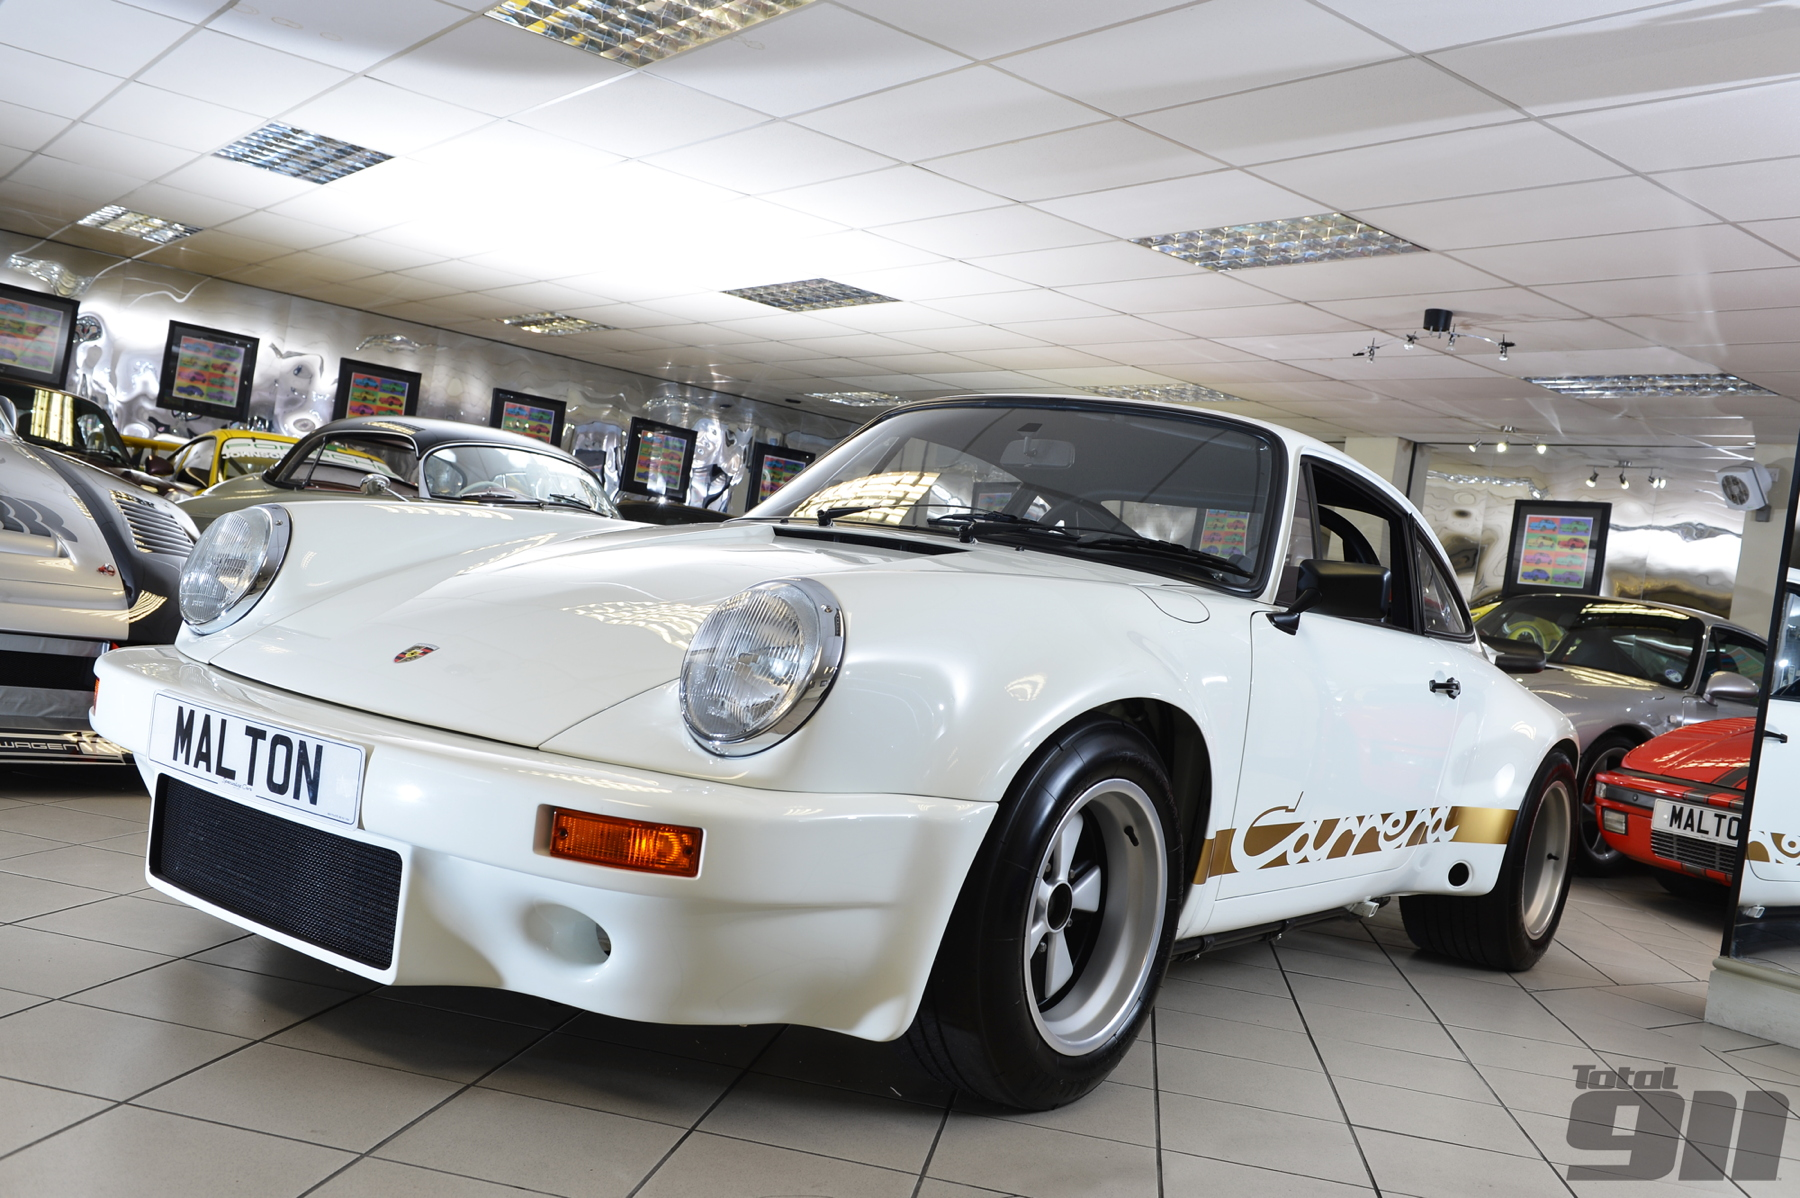 We go behind the scenes at Specialist Cars of Malton, Canepa's British equivalent,.